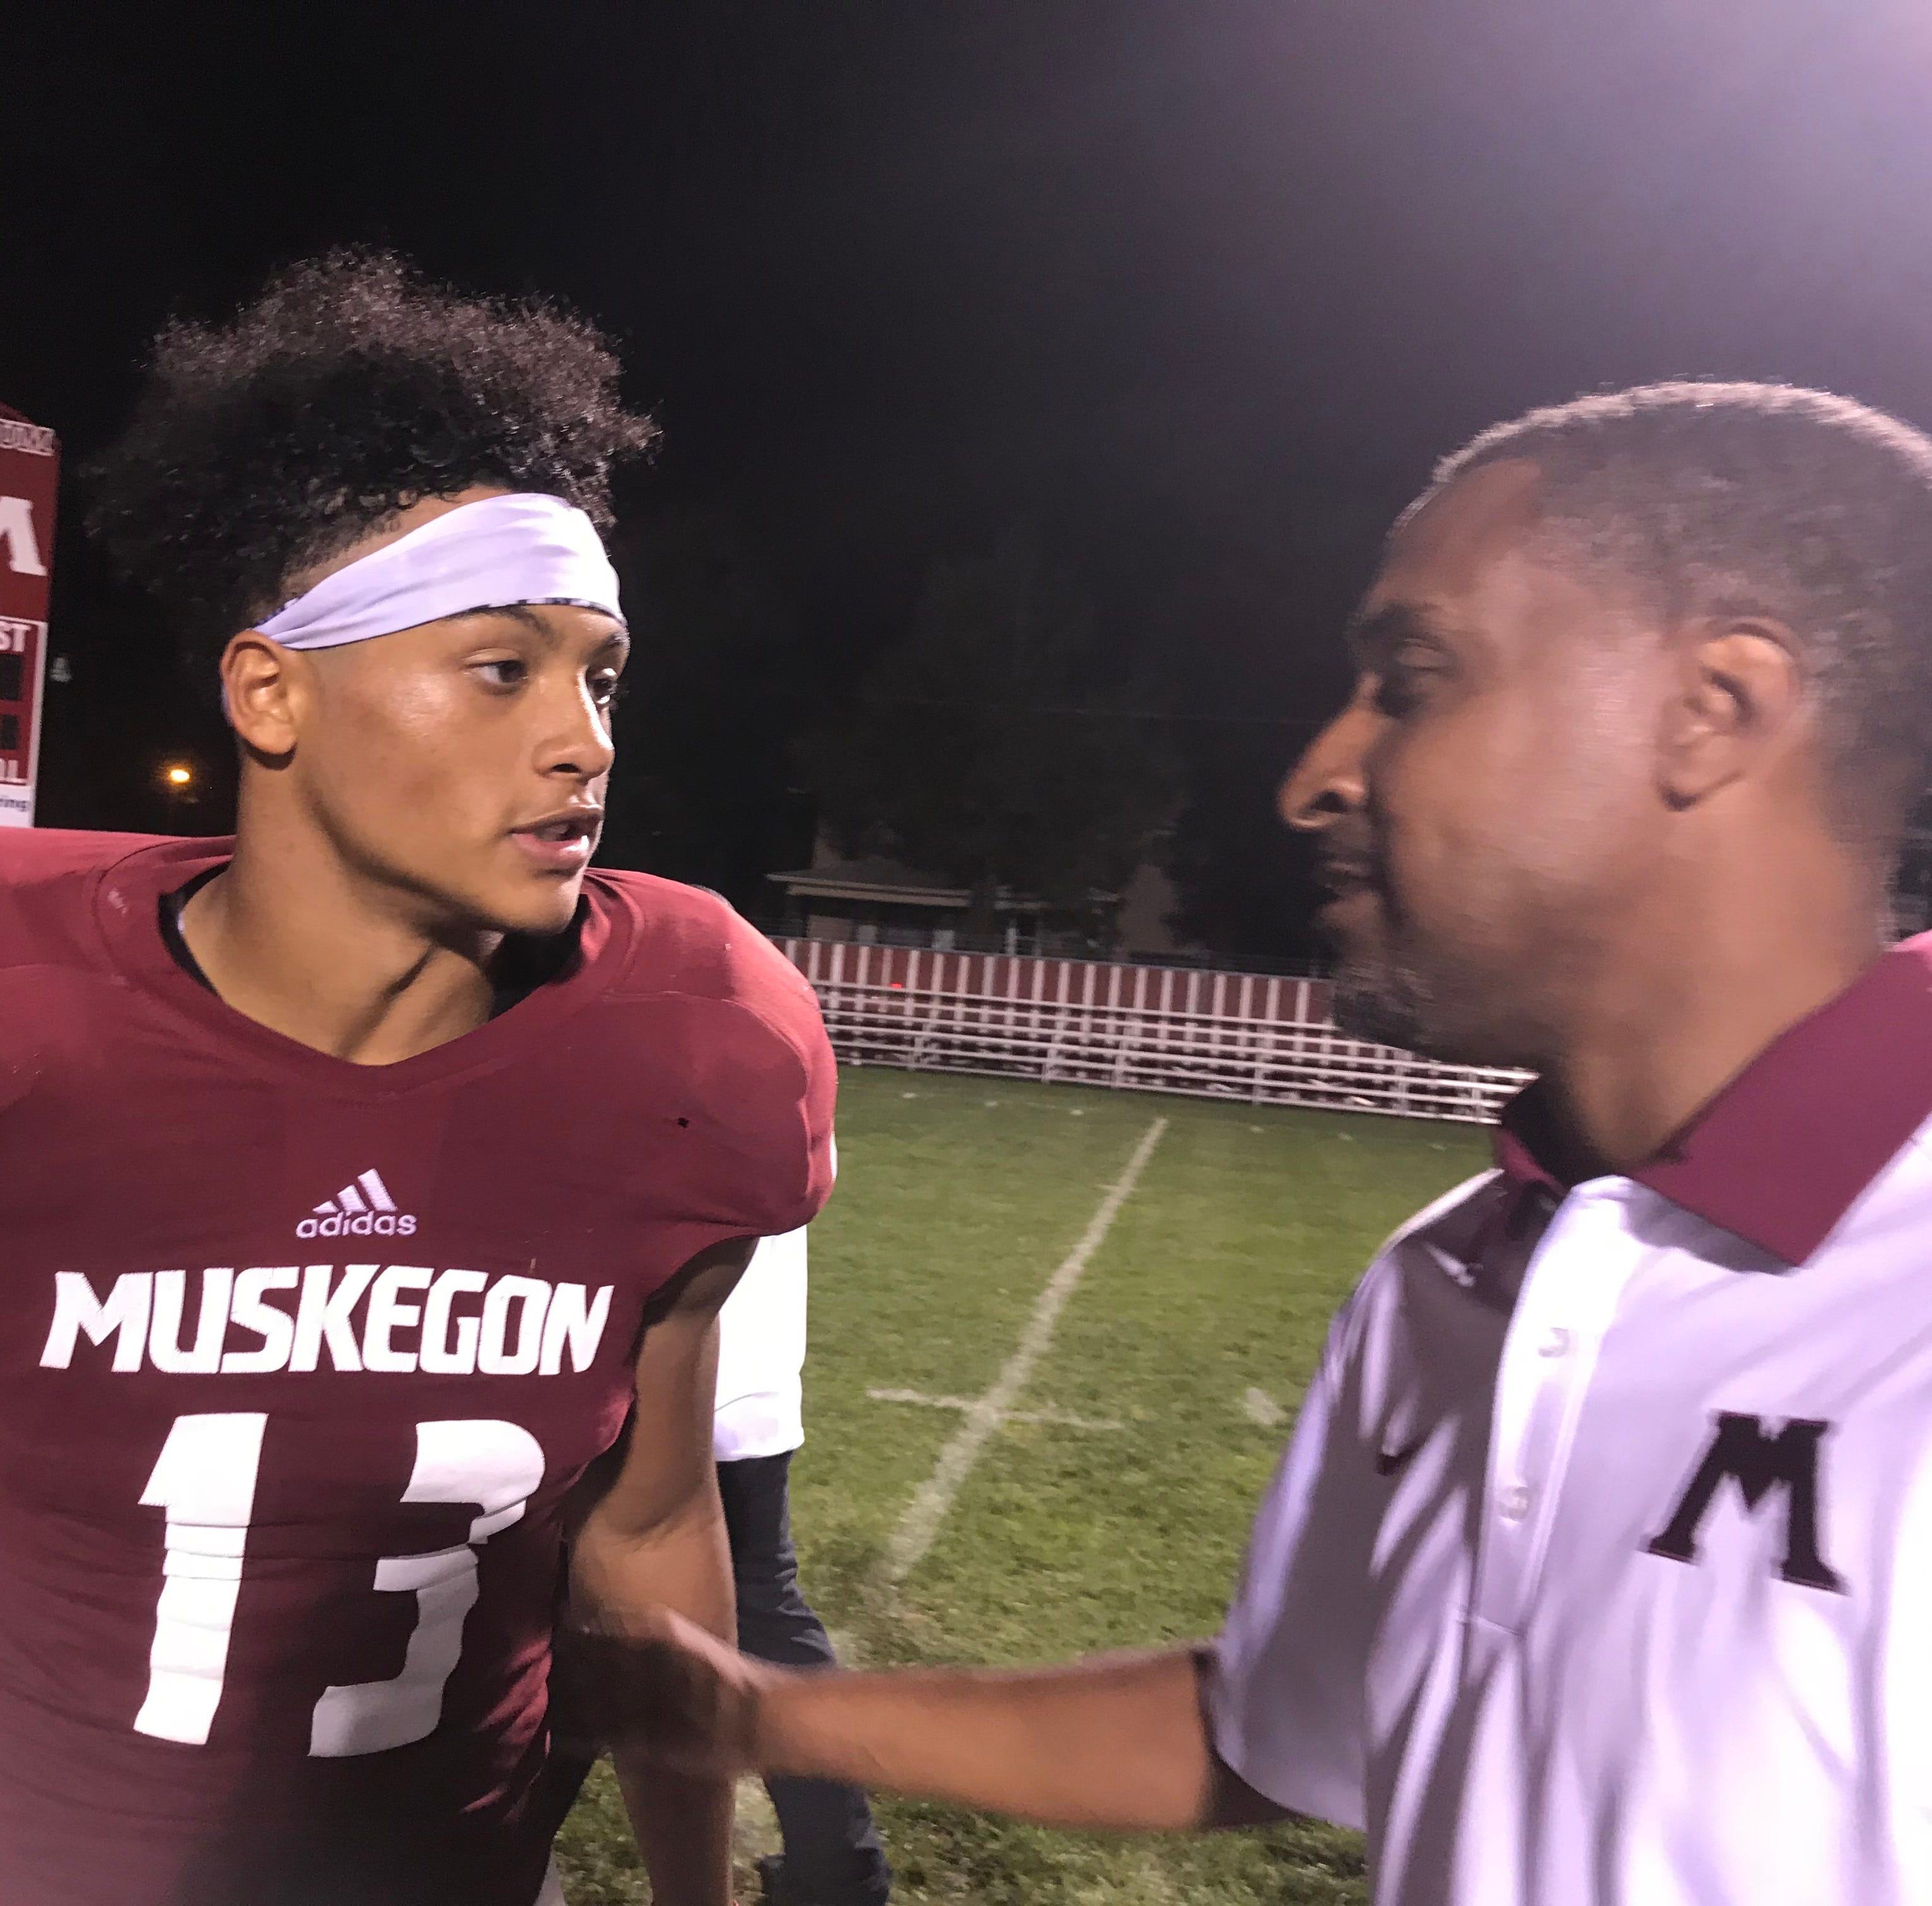 Muskegon QB Cameron Martinez finally gets offer from Michigan football